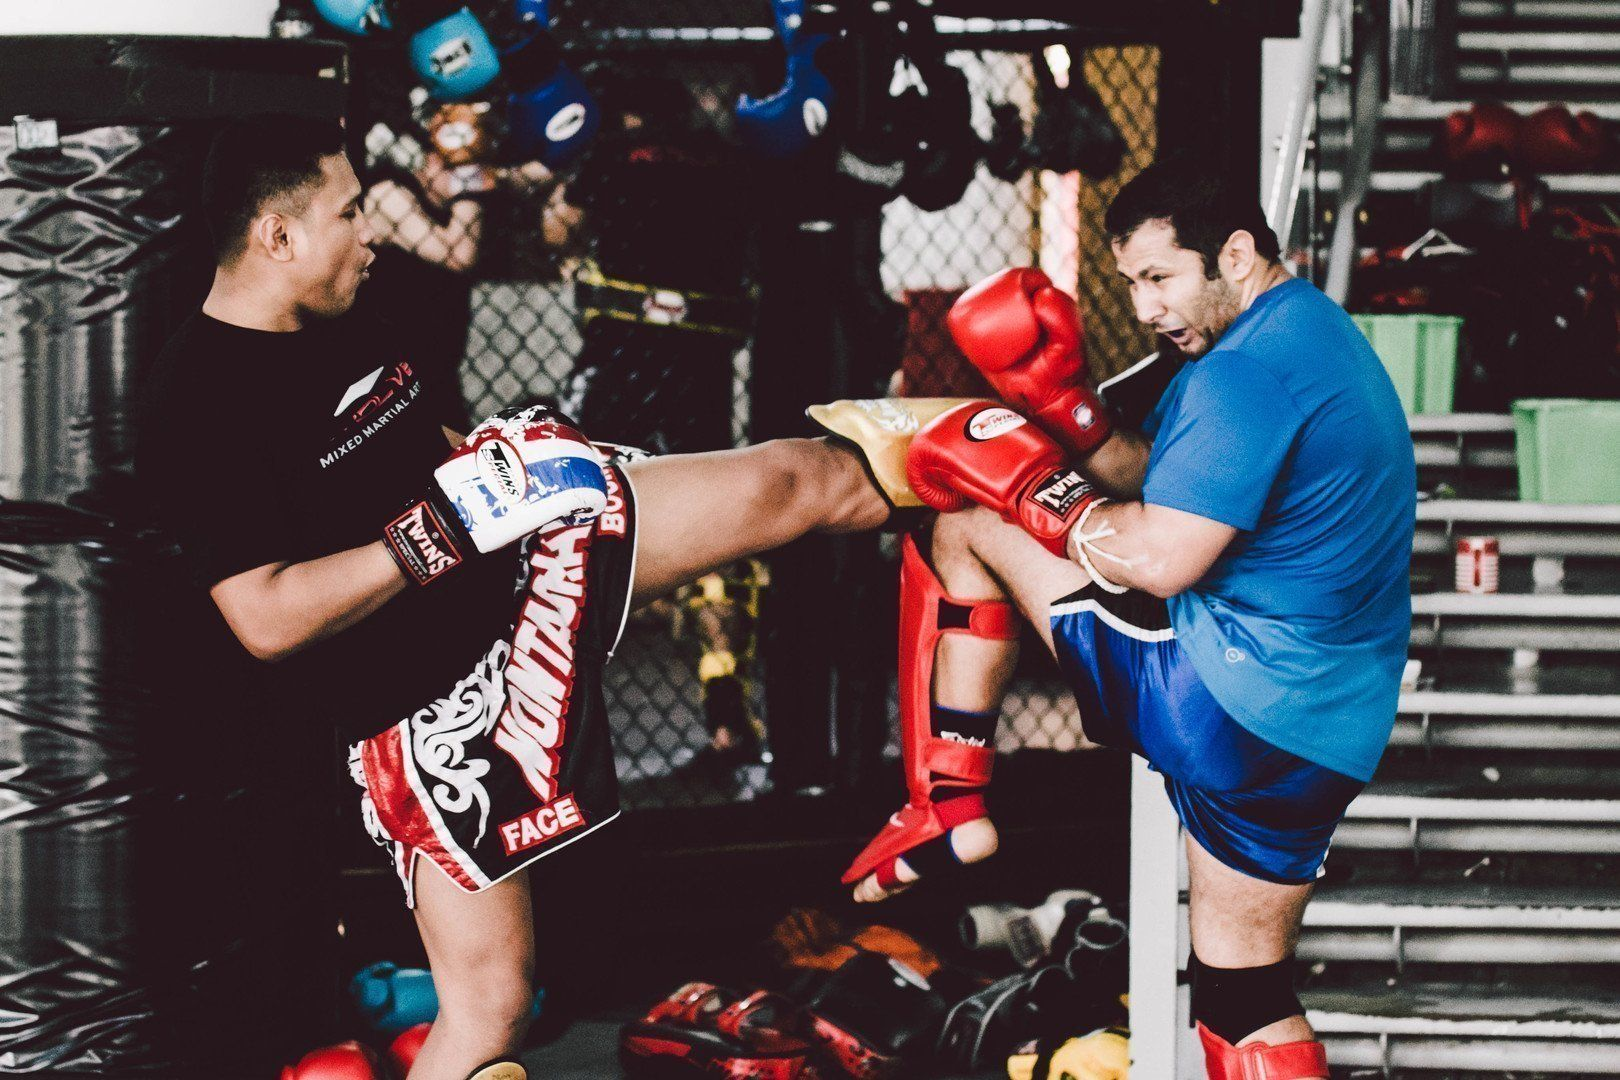 Sparring Is A Great Way To Take Your Training To The Next Level